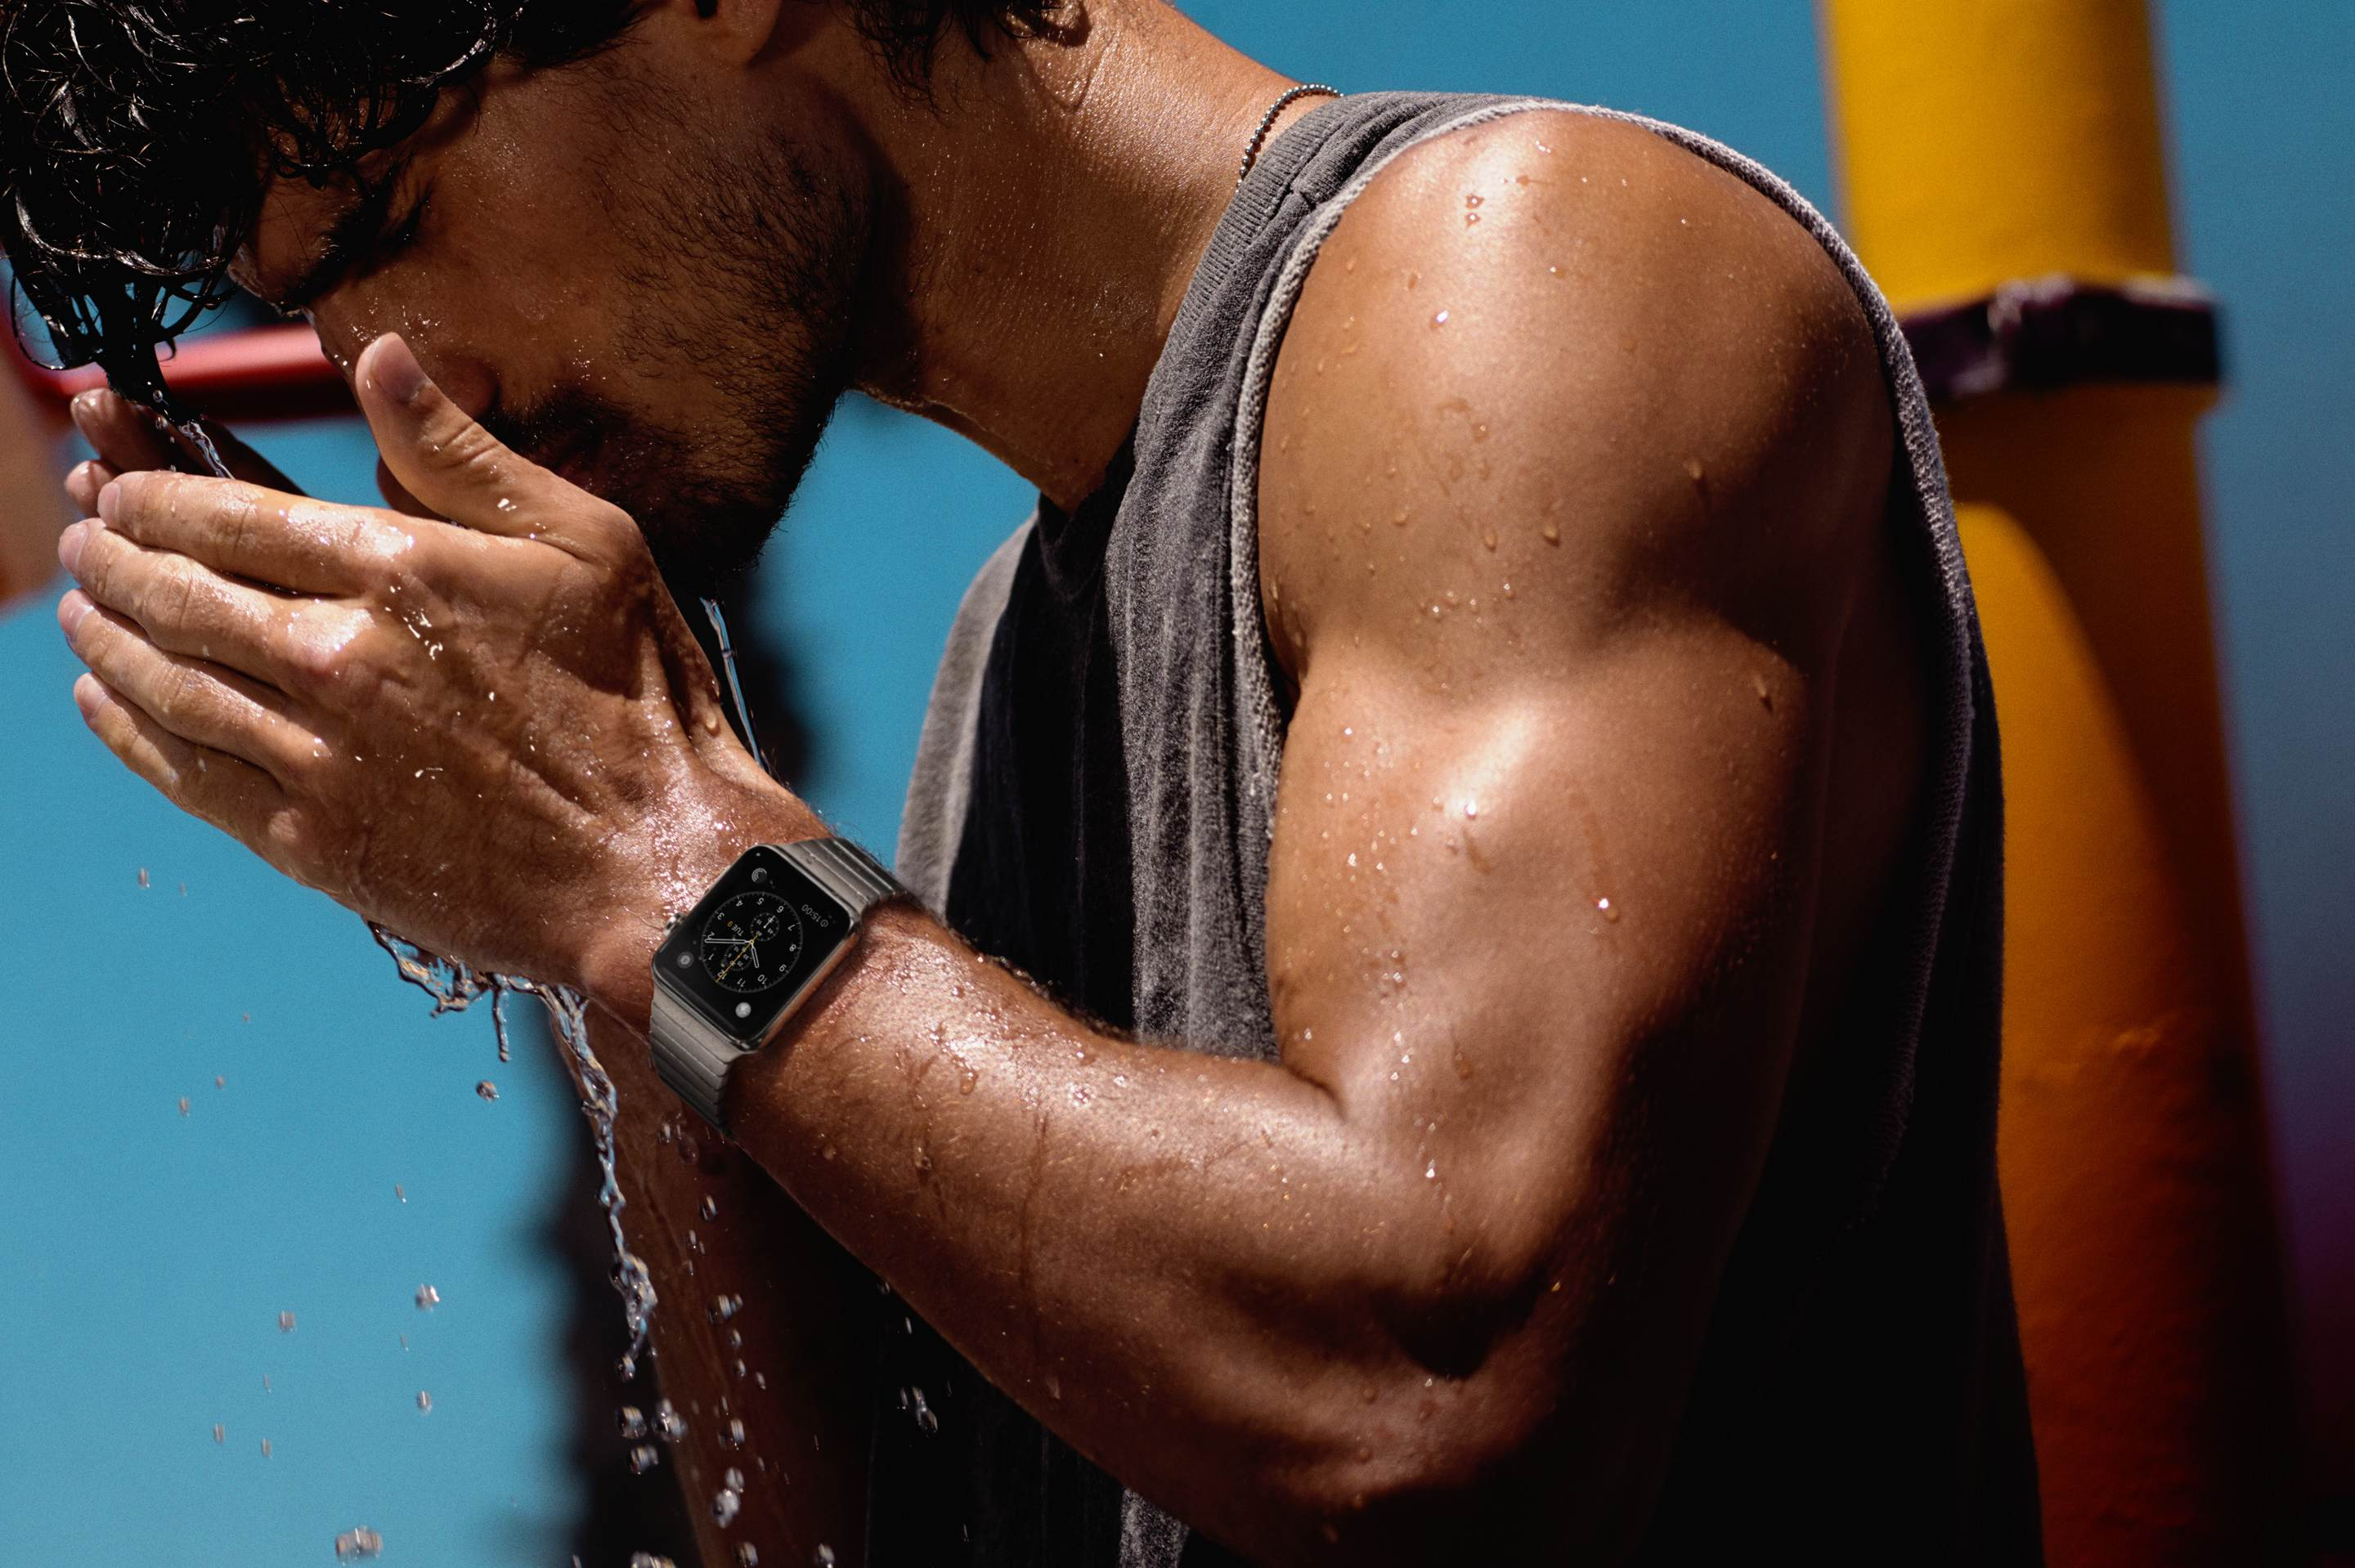 Your fitness data is safer with Apple Watch than other devices